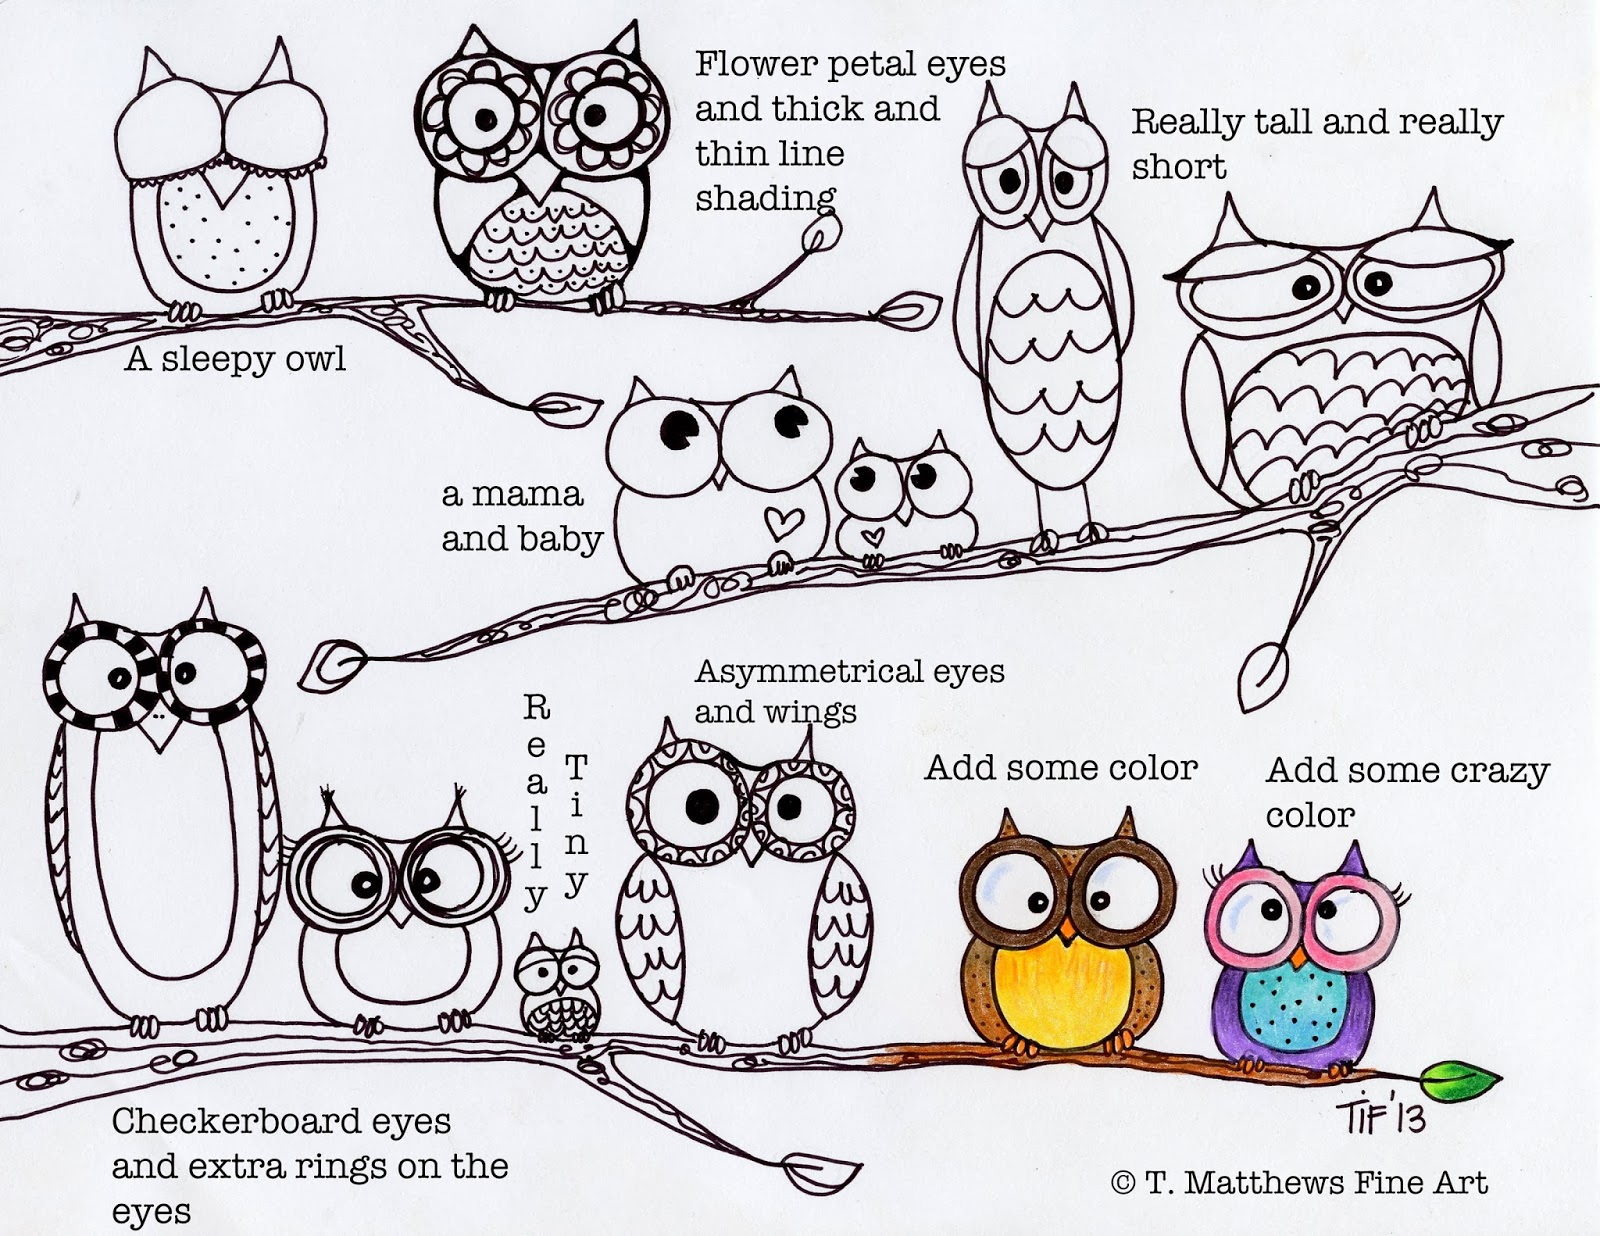 Cute owl love drawing - photo#25